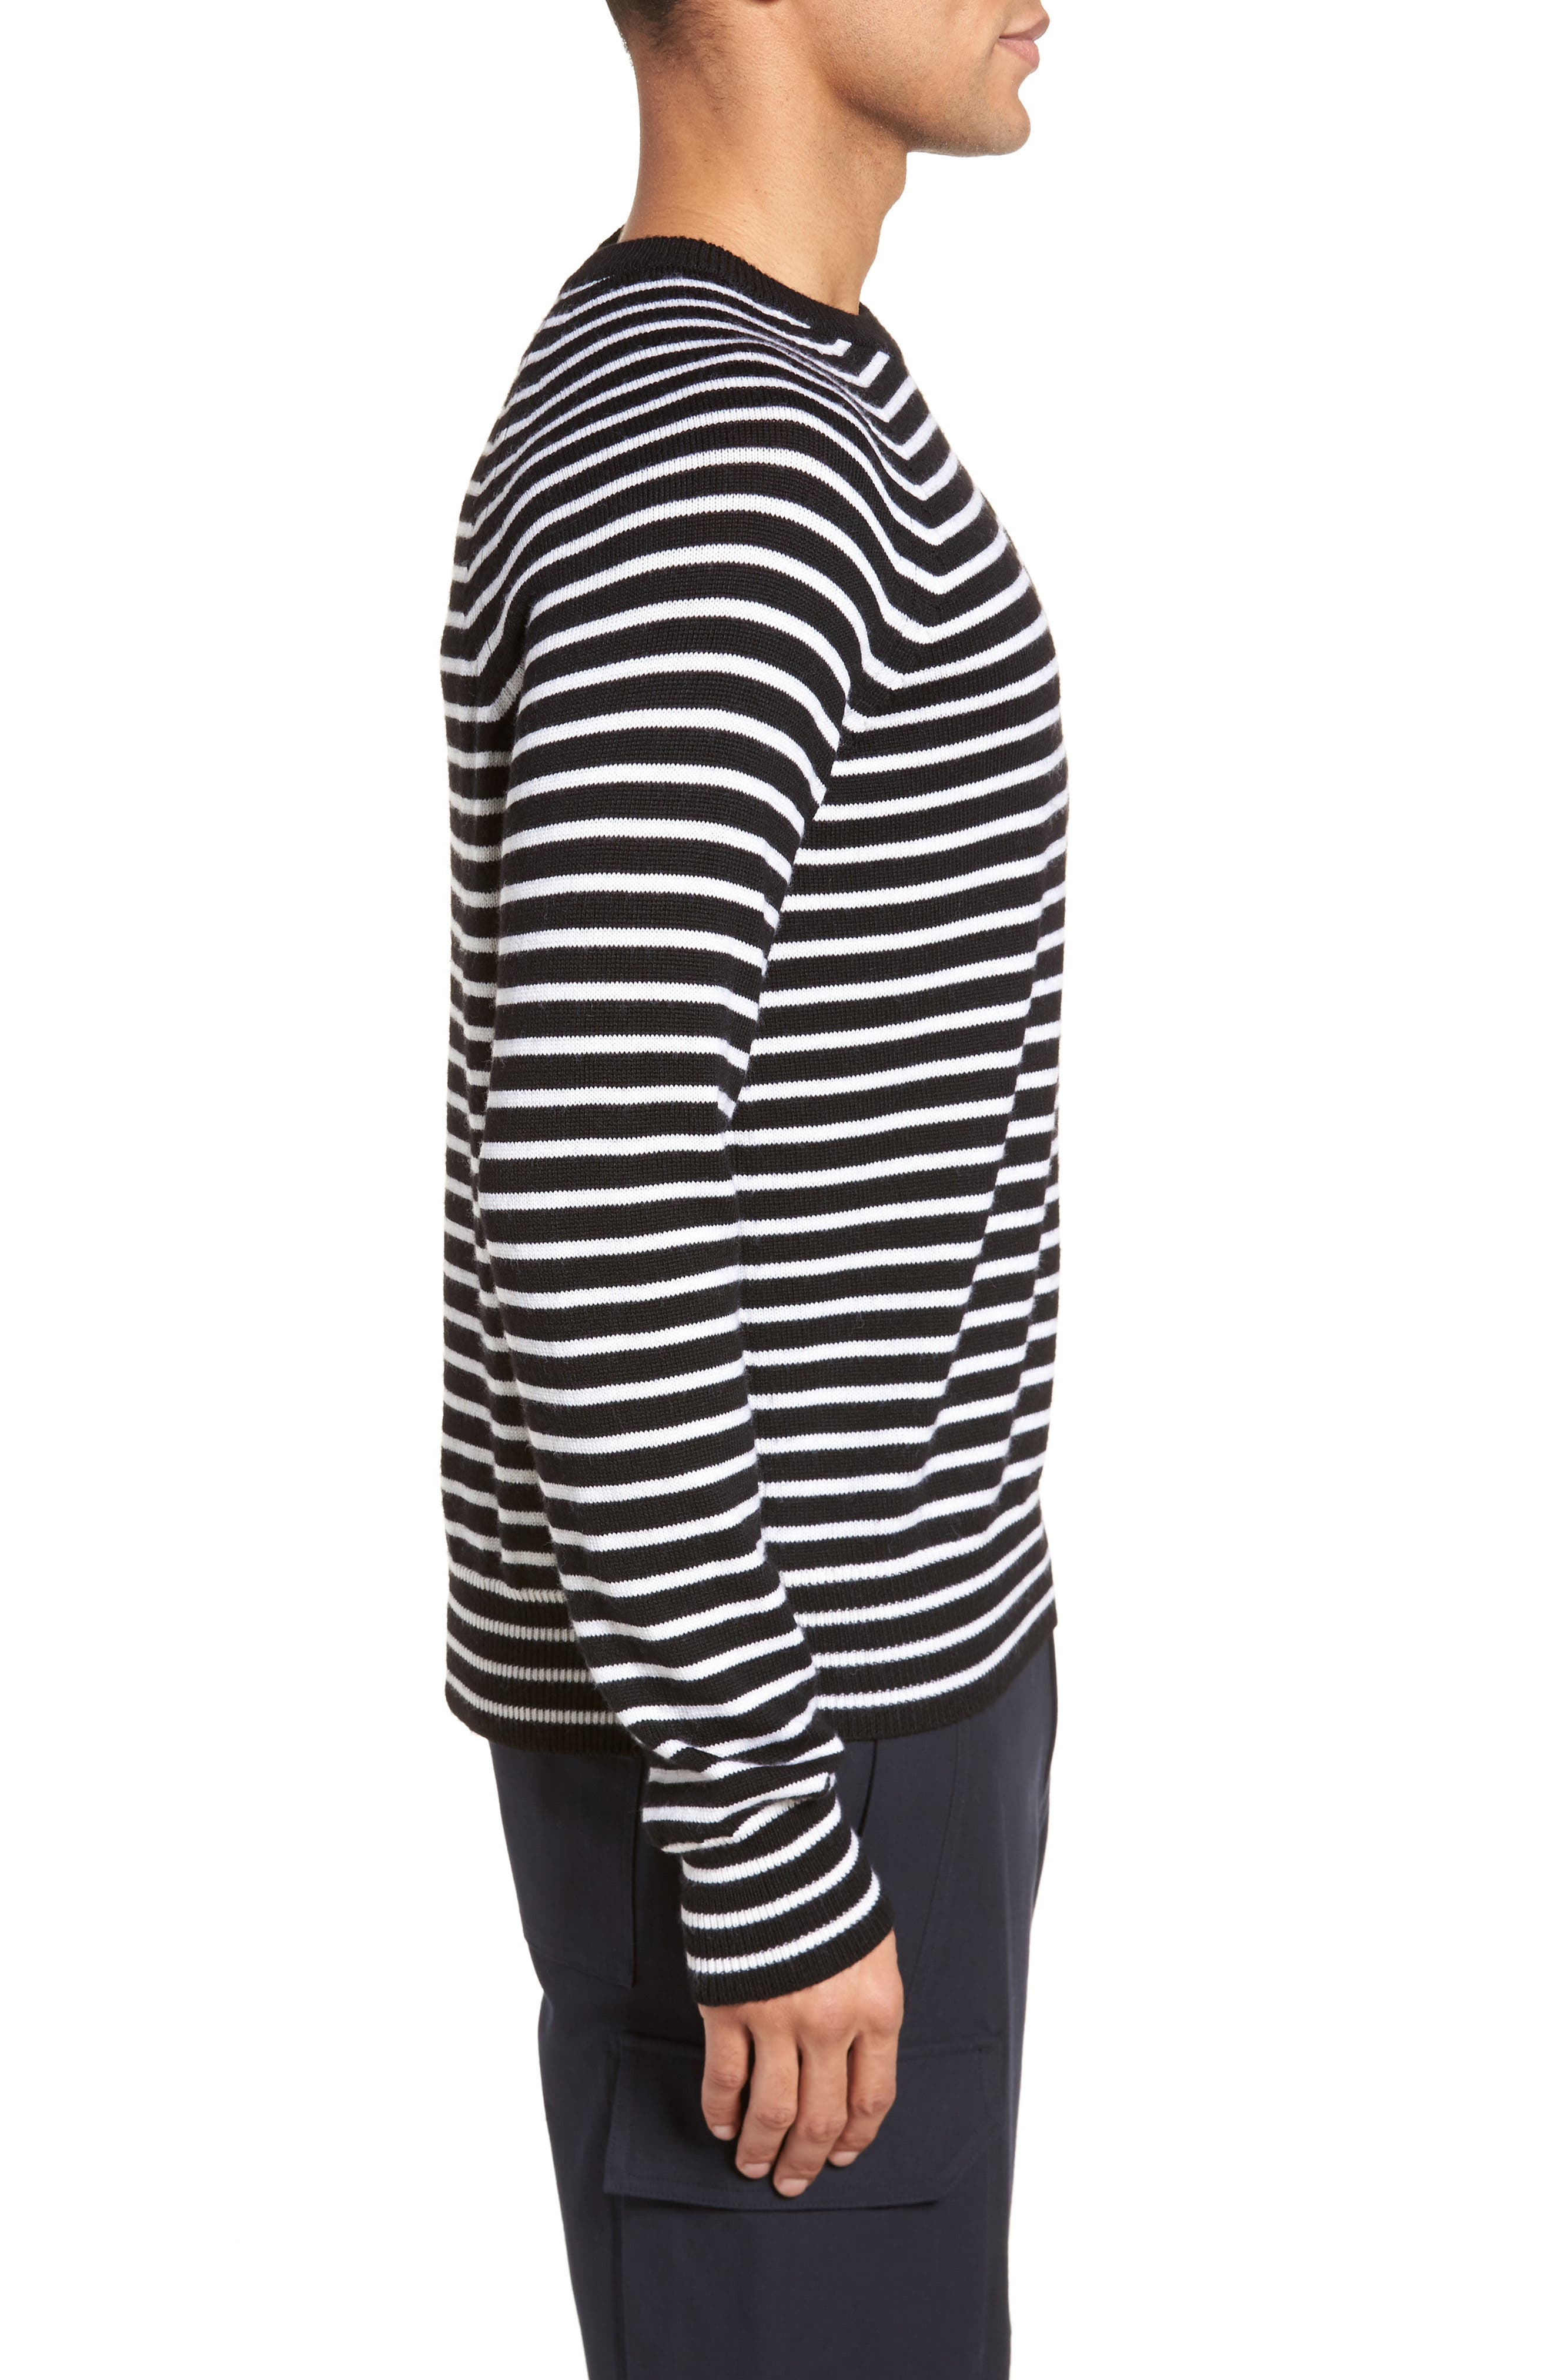 Regular Fit Striped Wool Sweater,                             Alternate thumbnail 3, color,                             Black/ Stormy White